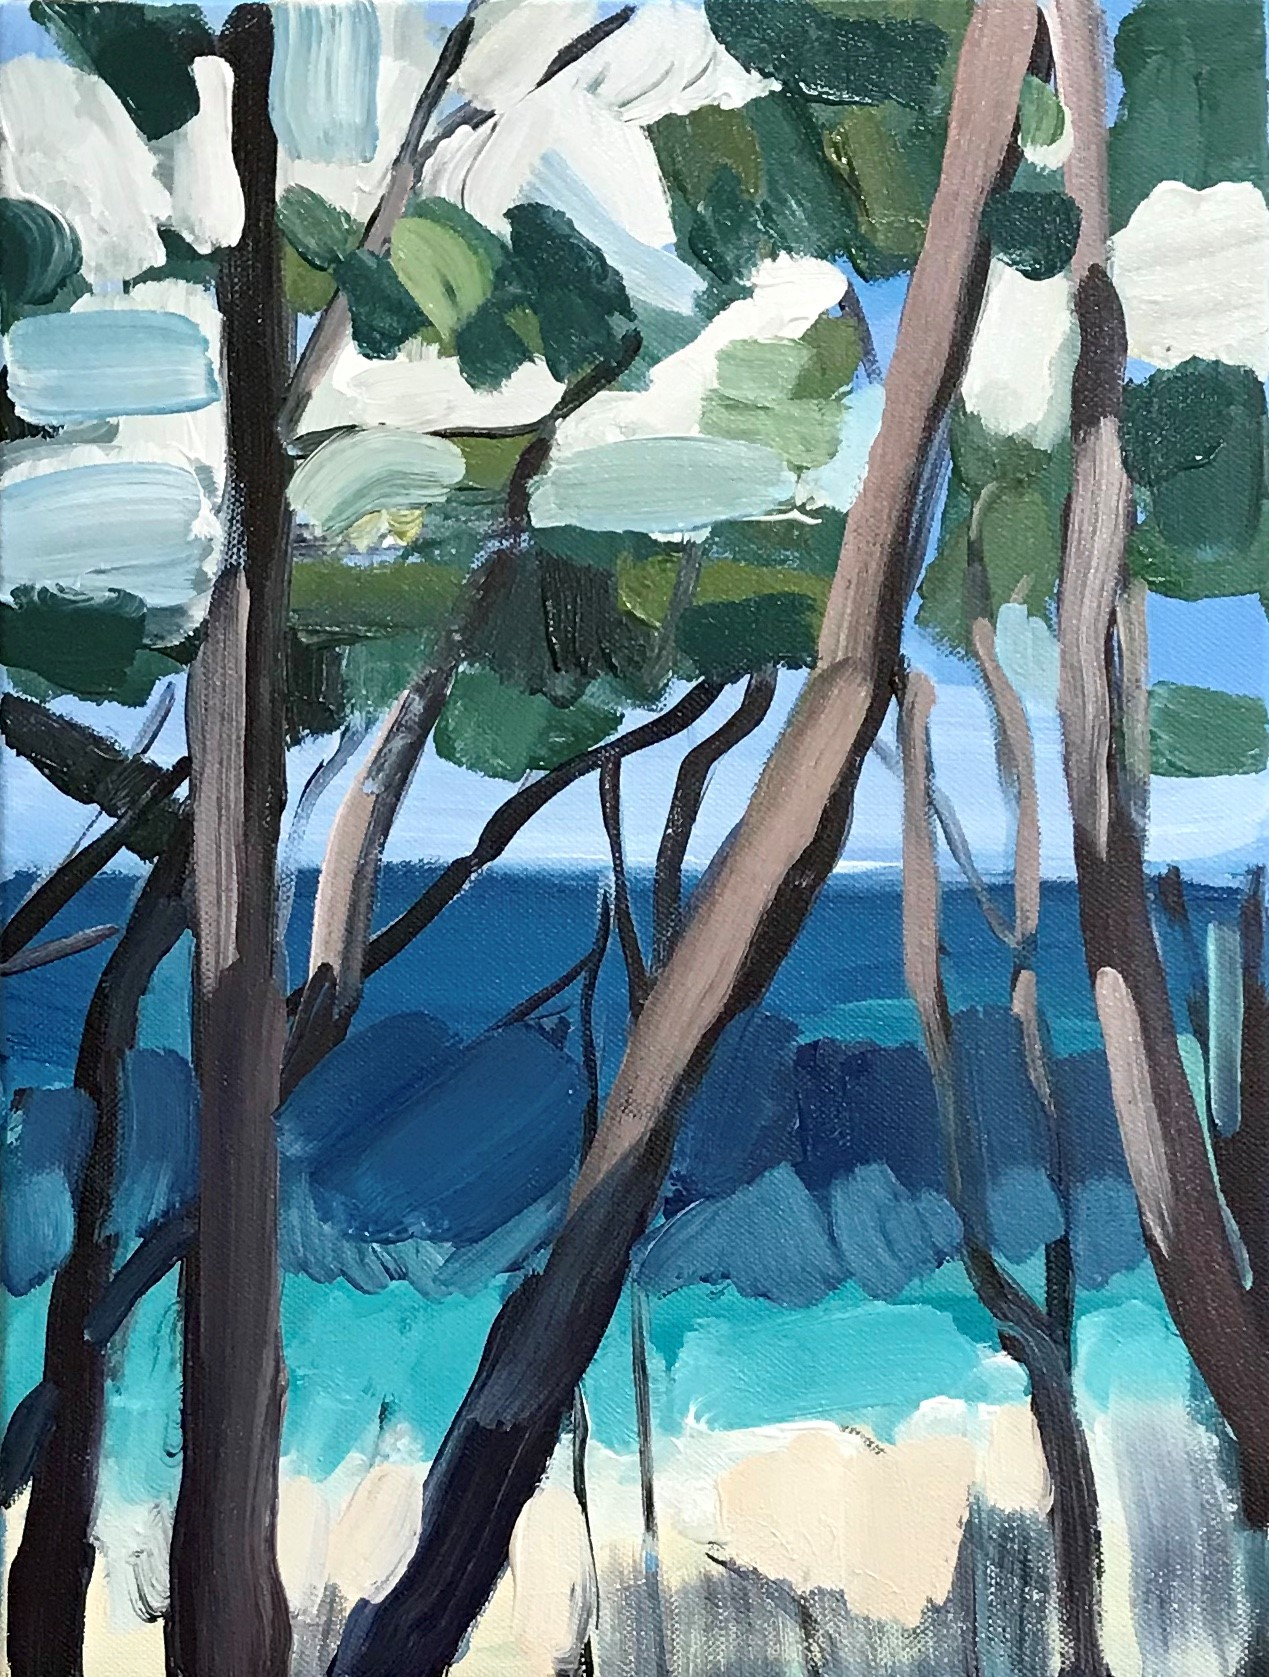 Jervis Bay 30 X 40cm acrylic on canvas 2019